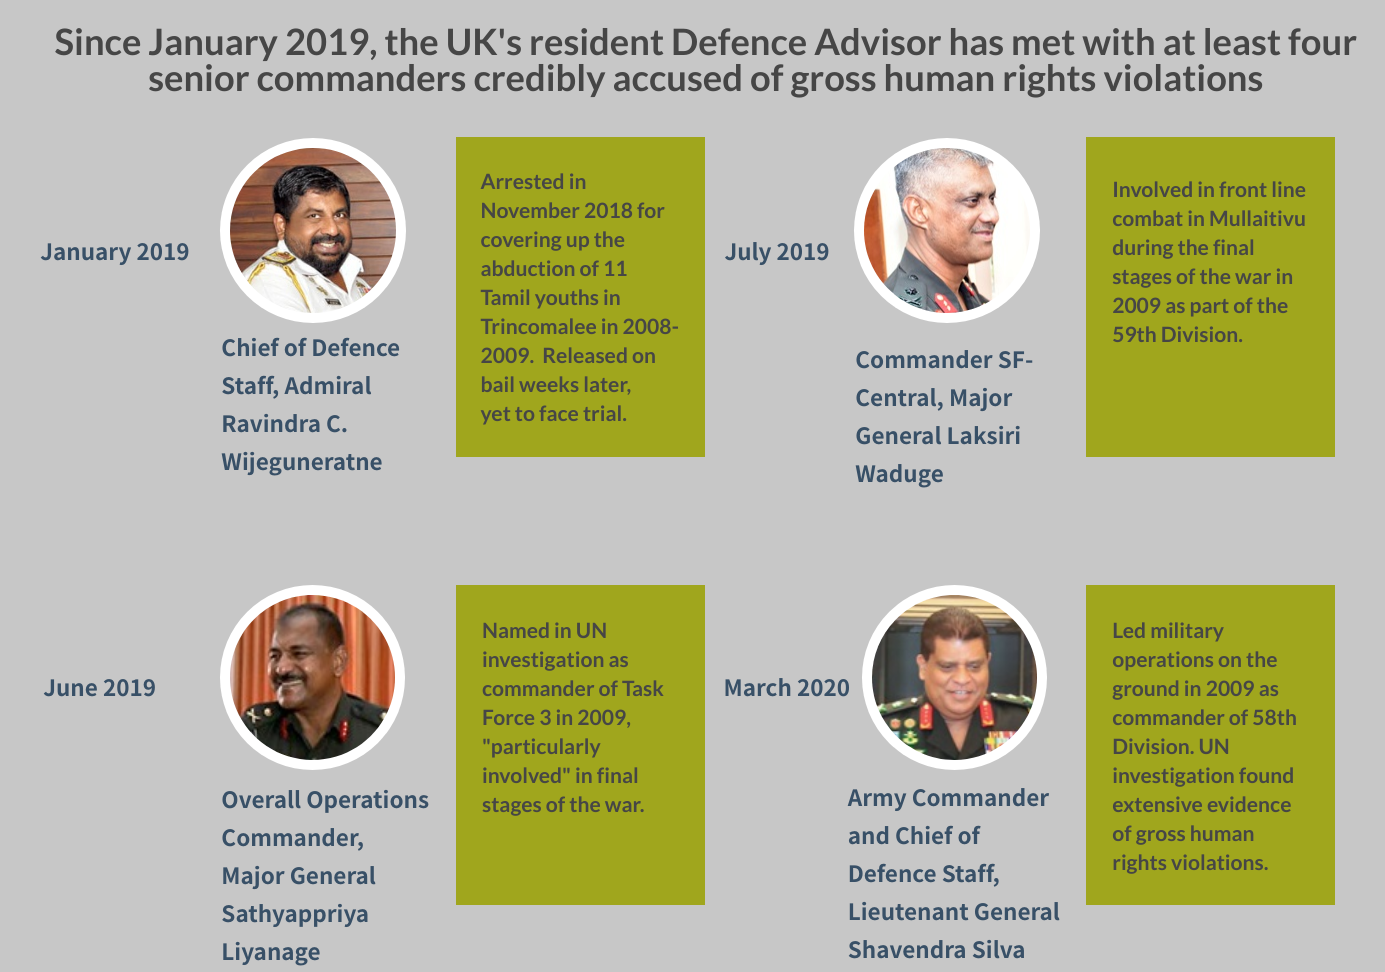 Four senior commanders accused of gross human rights violations whom the Defence Advisor has met since January 2019